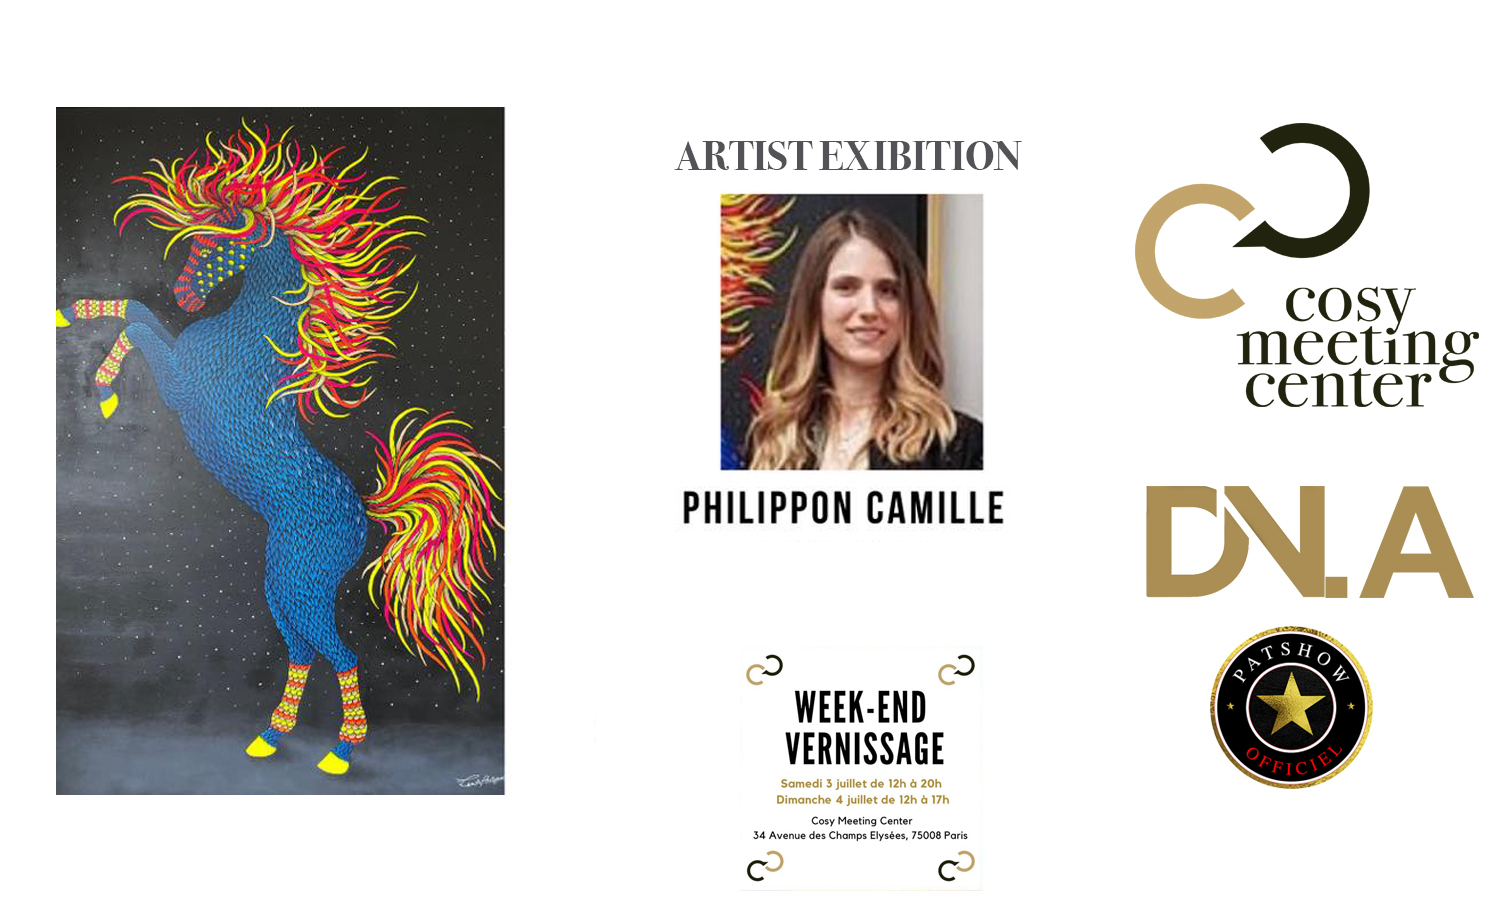 COSY MEETING CENTER Connection with all the arts – Sir Kenneth Johnson, President of the Europe Africa Committee - DN-AFRICA - DN-A - PATSHOW ACTIVITES OFFICIAL MEDIA PARTNER - Camille Philippon EXIBITION - Camille Philippon EXIBITION